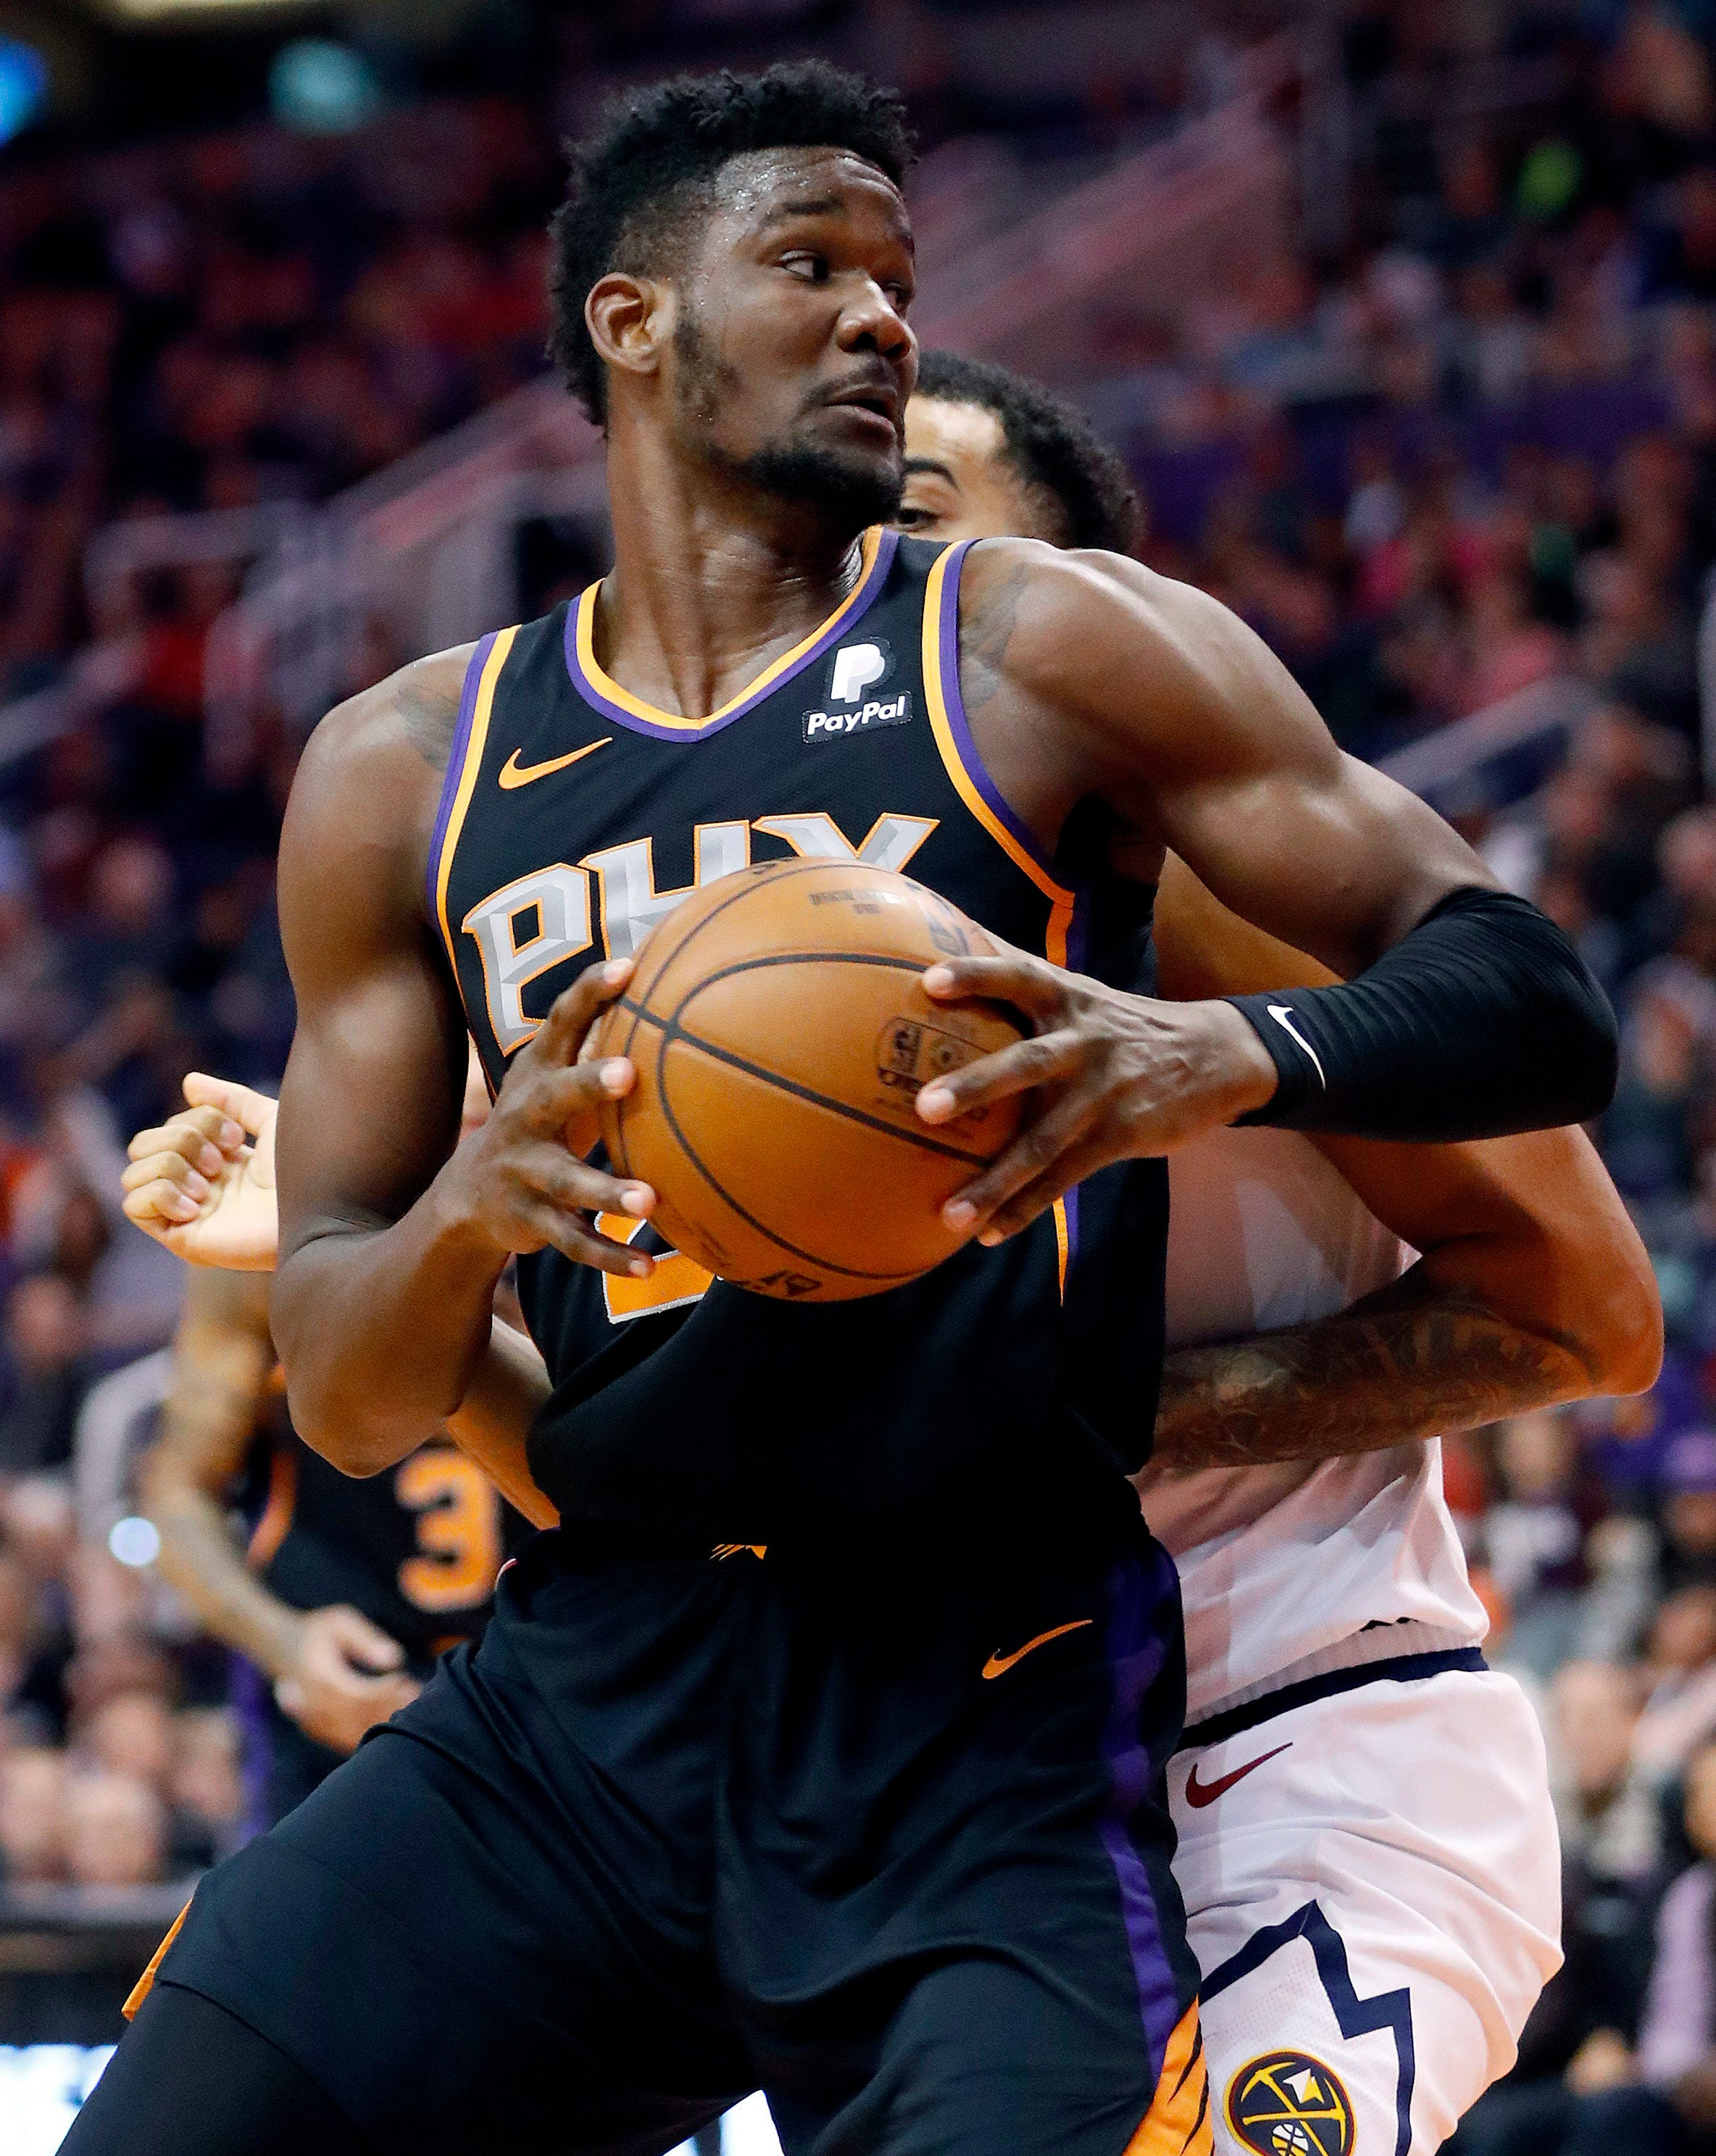 Murray scores 46, hits 9 3s as Nuggets hold off Suns 122-118